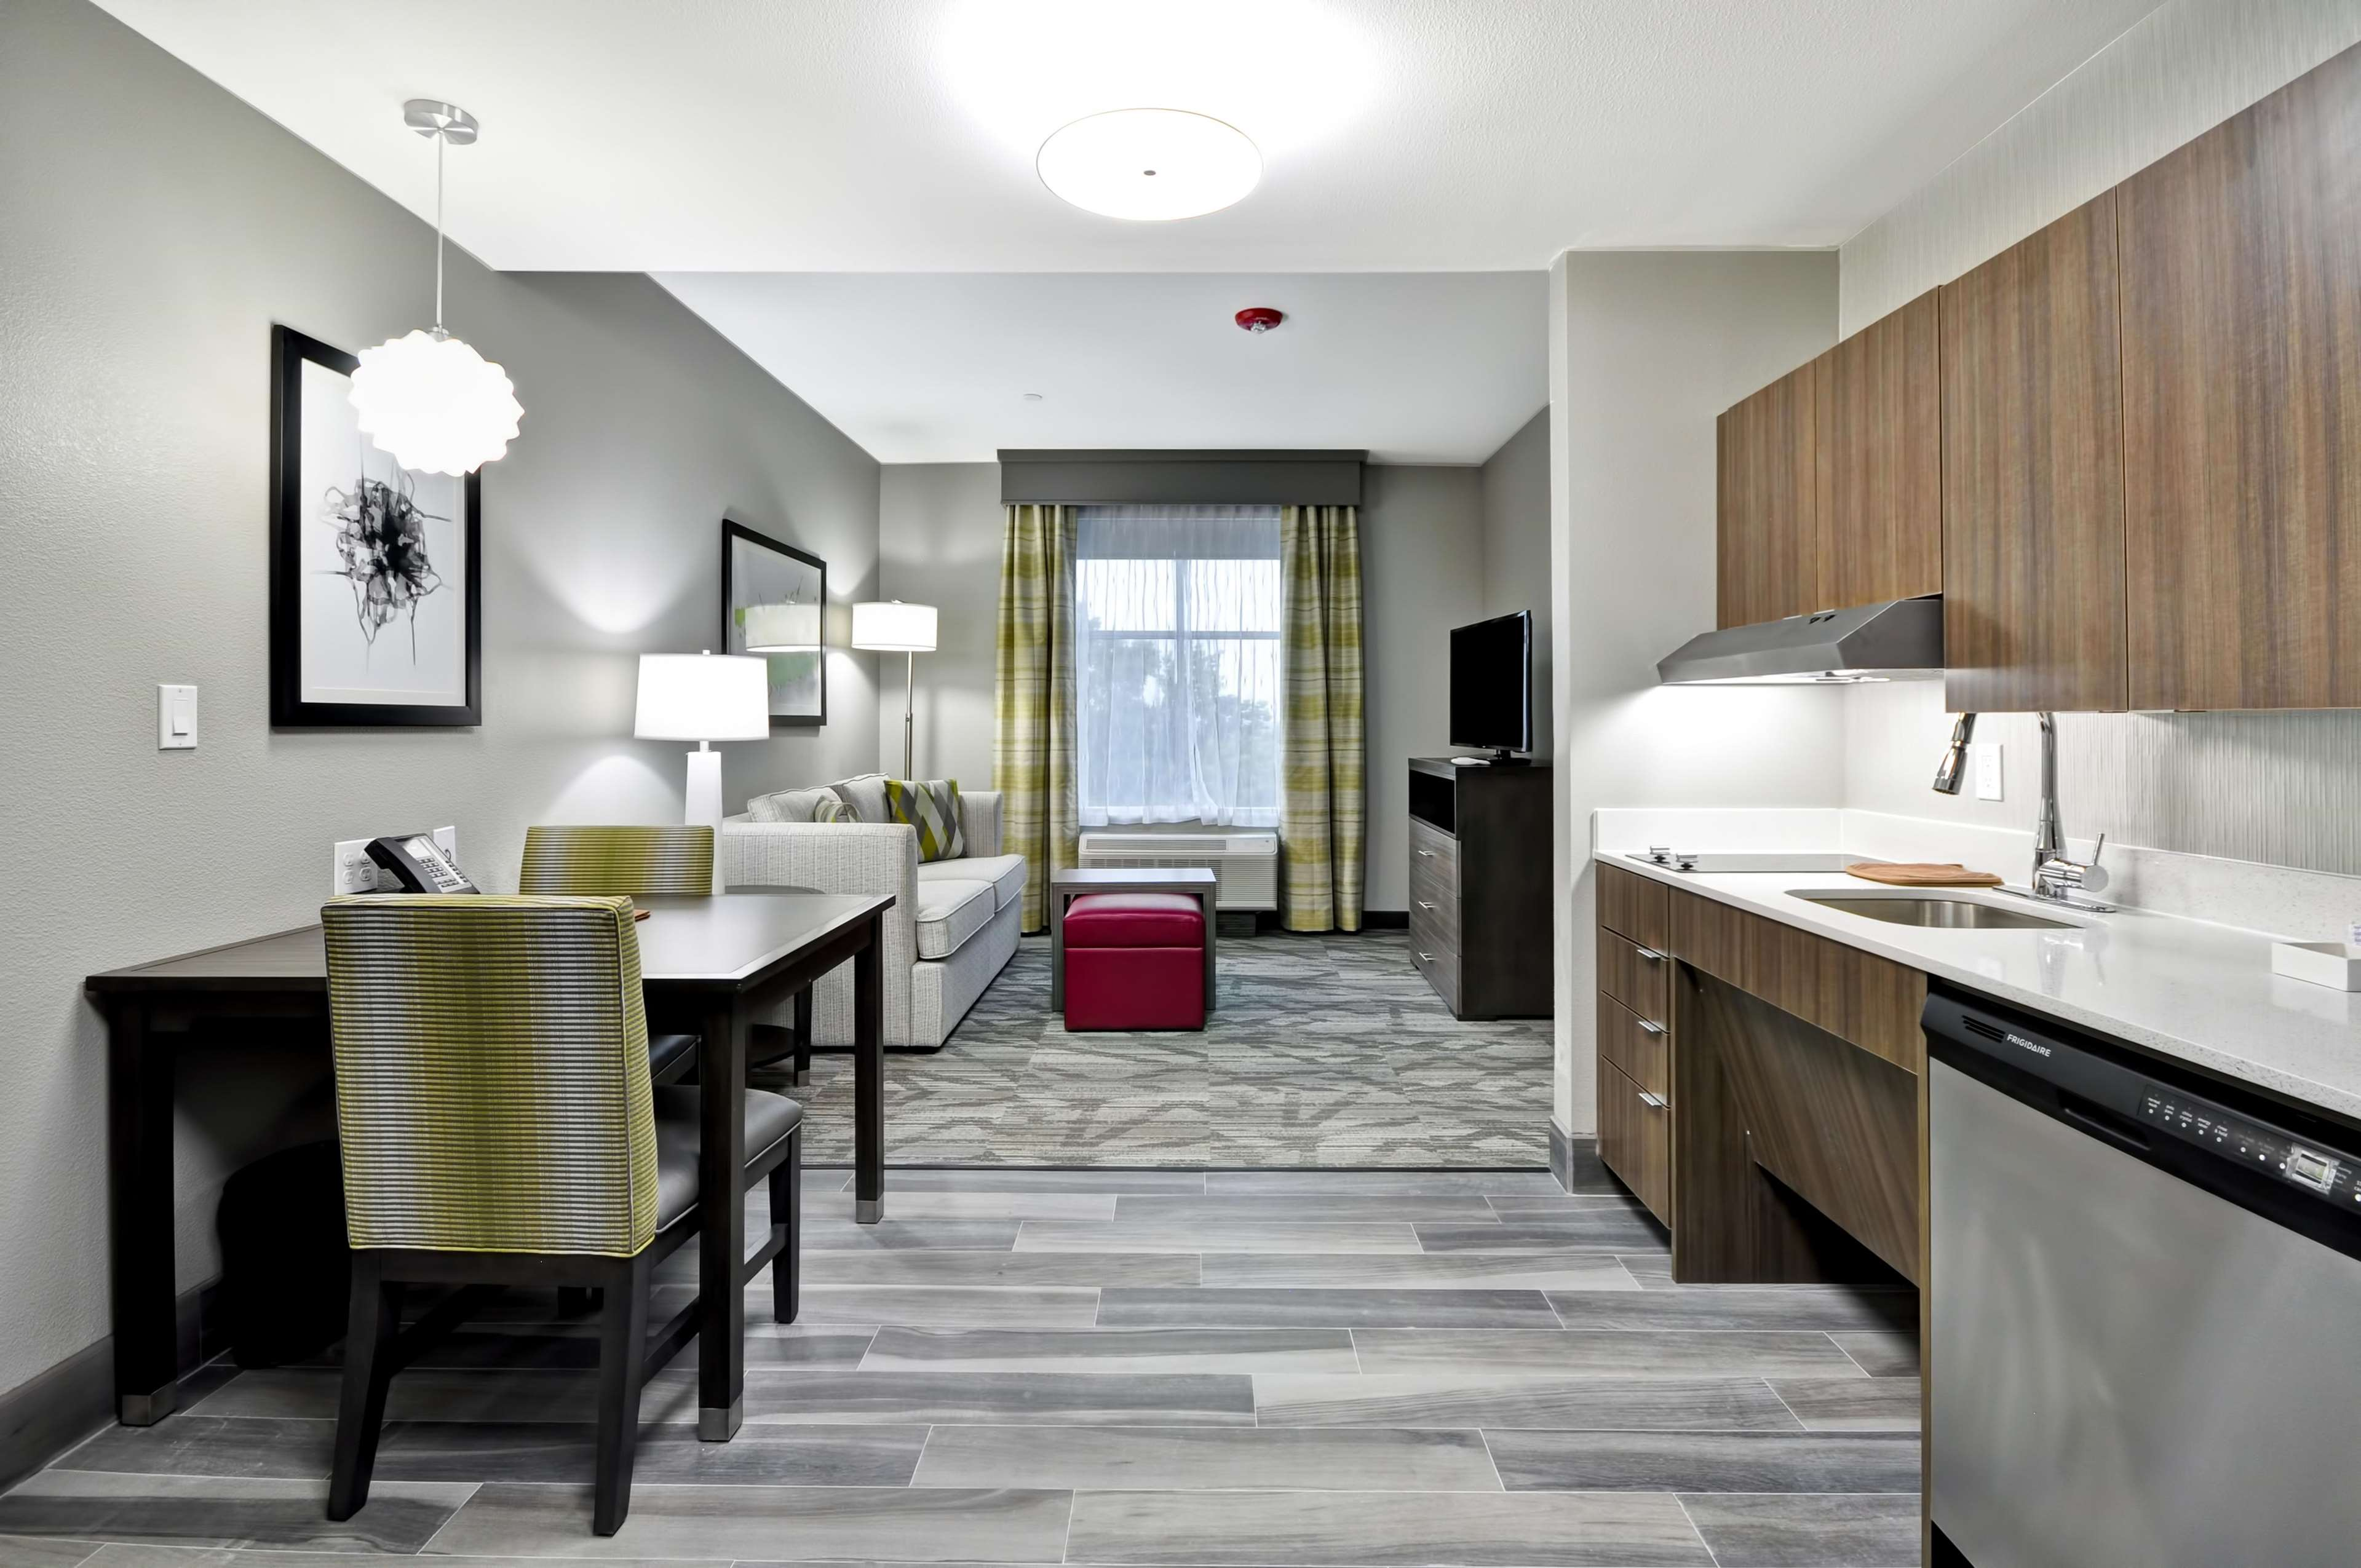 Homewood Suites by Hilton Tyler image 26